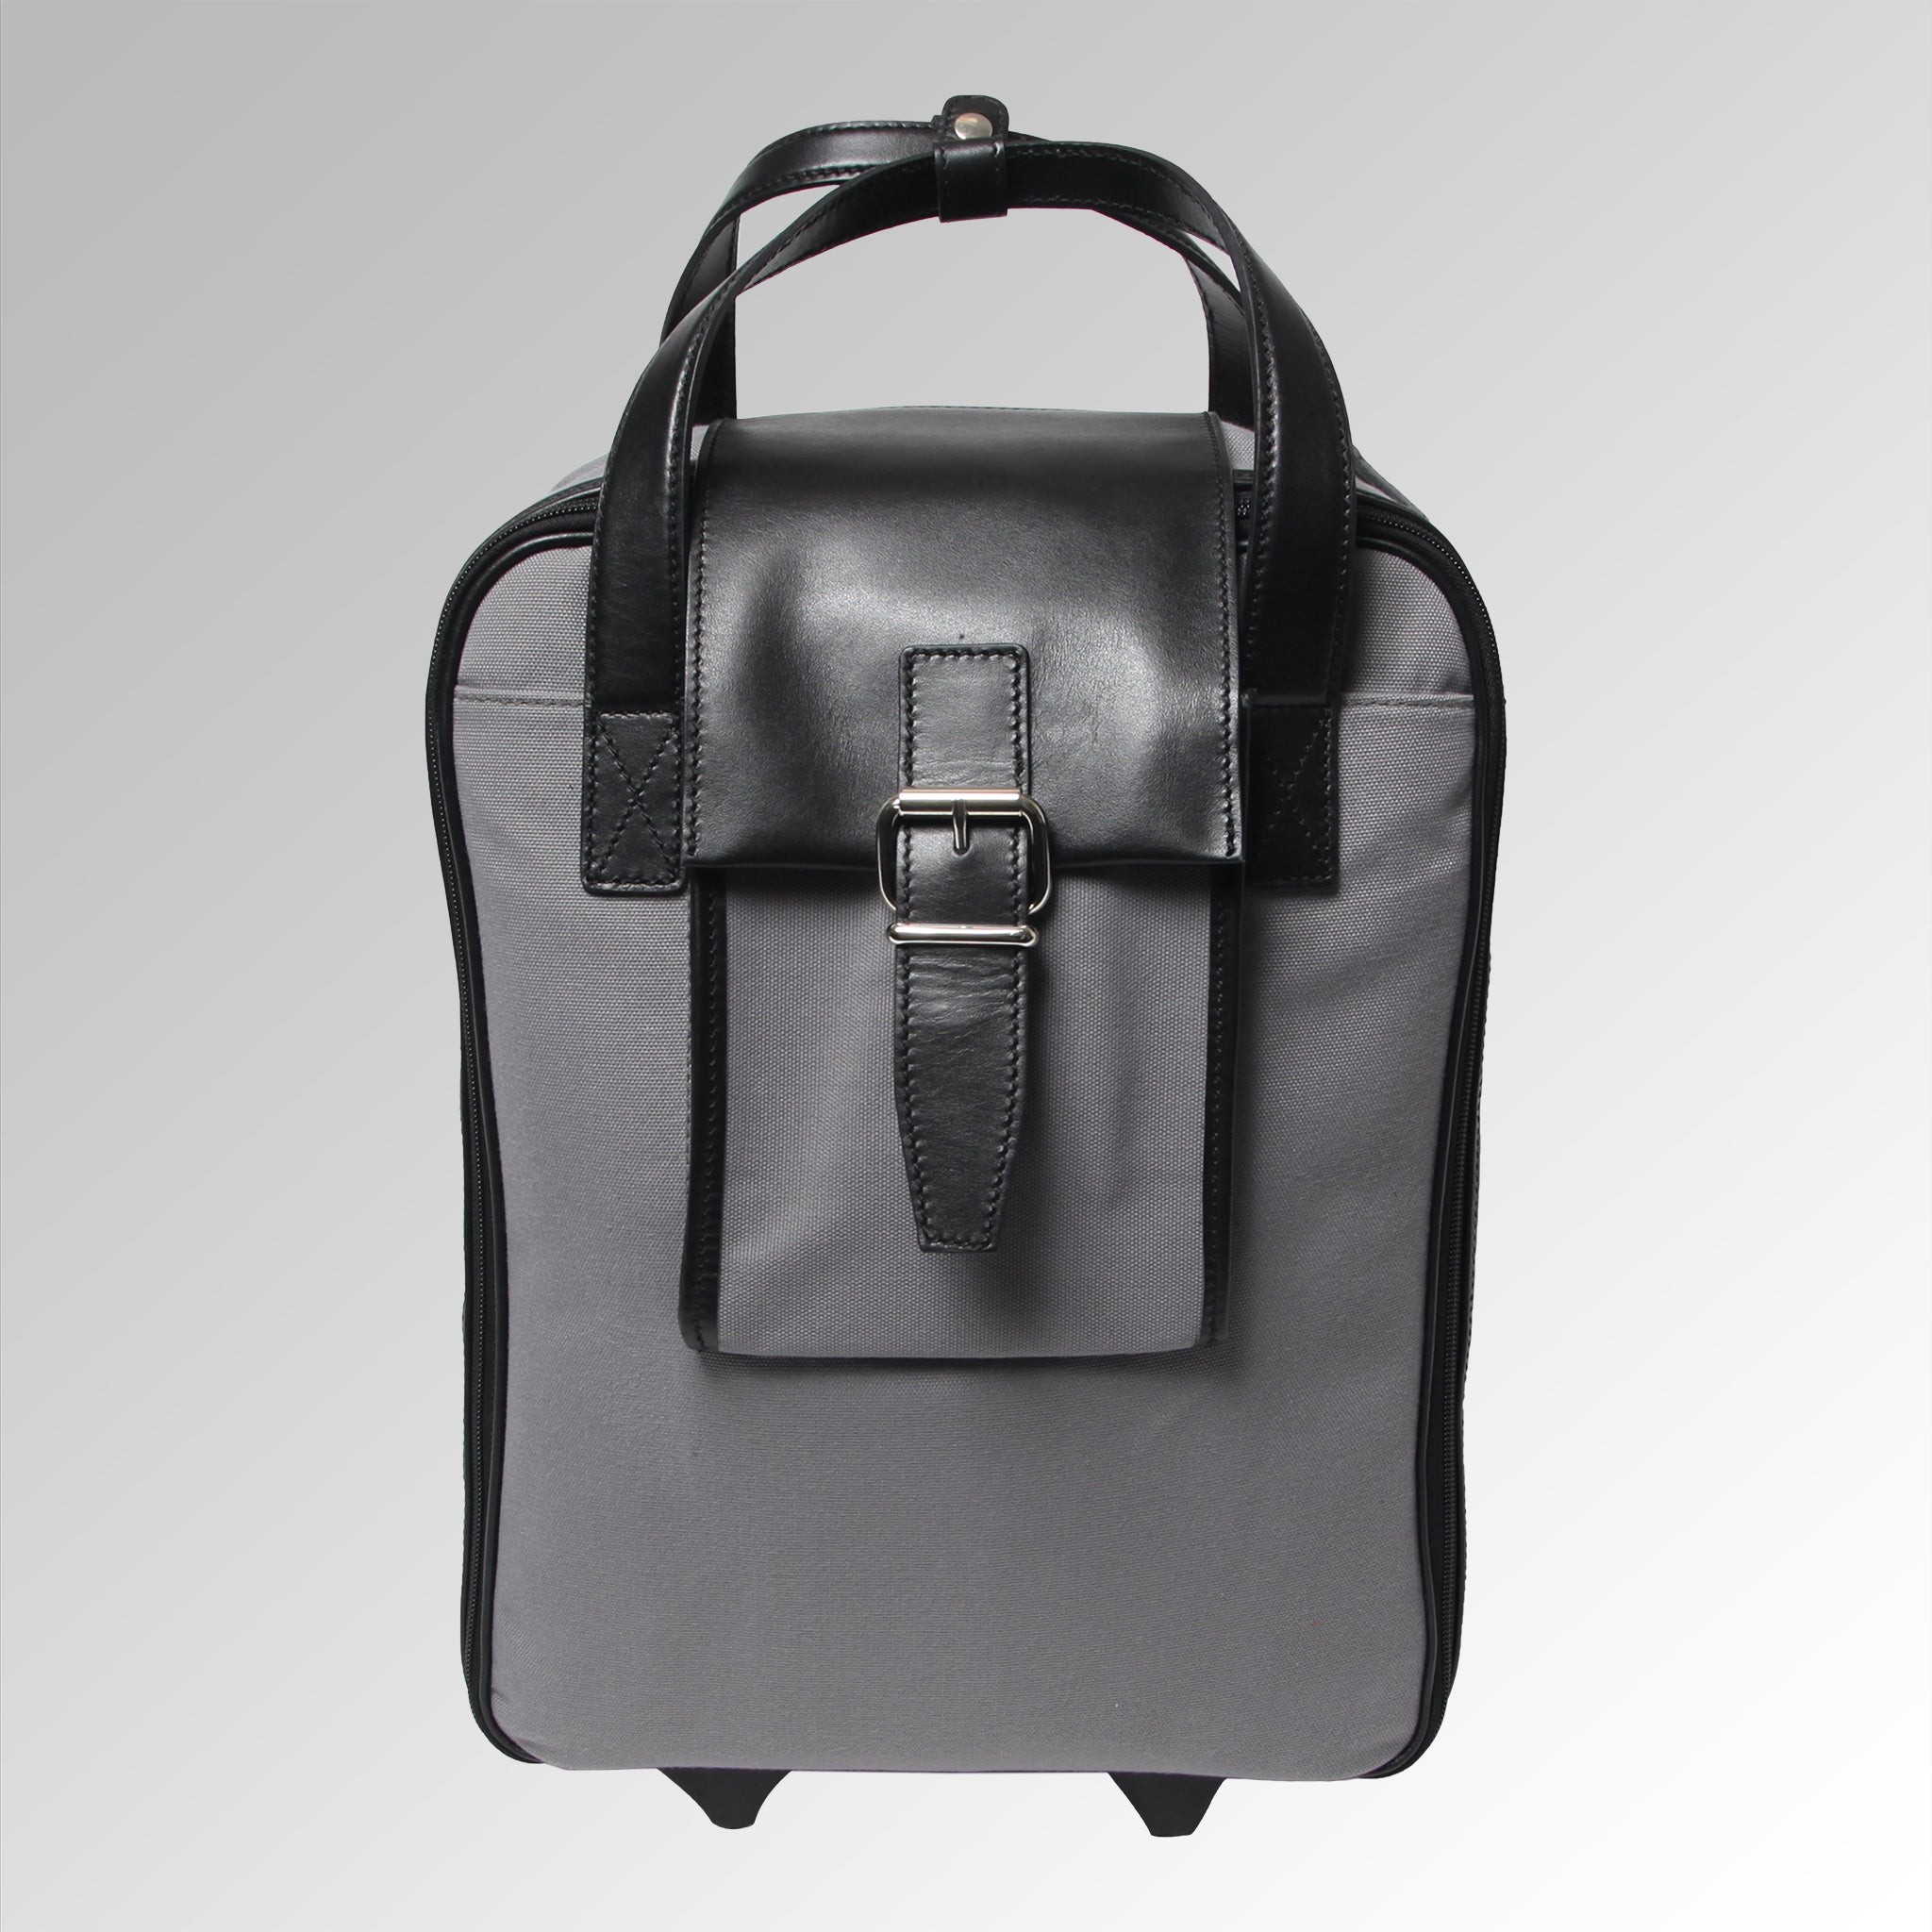 Travel - Gray/Black Carry On